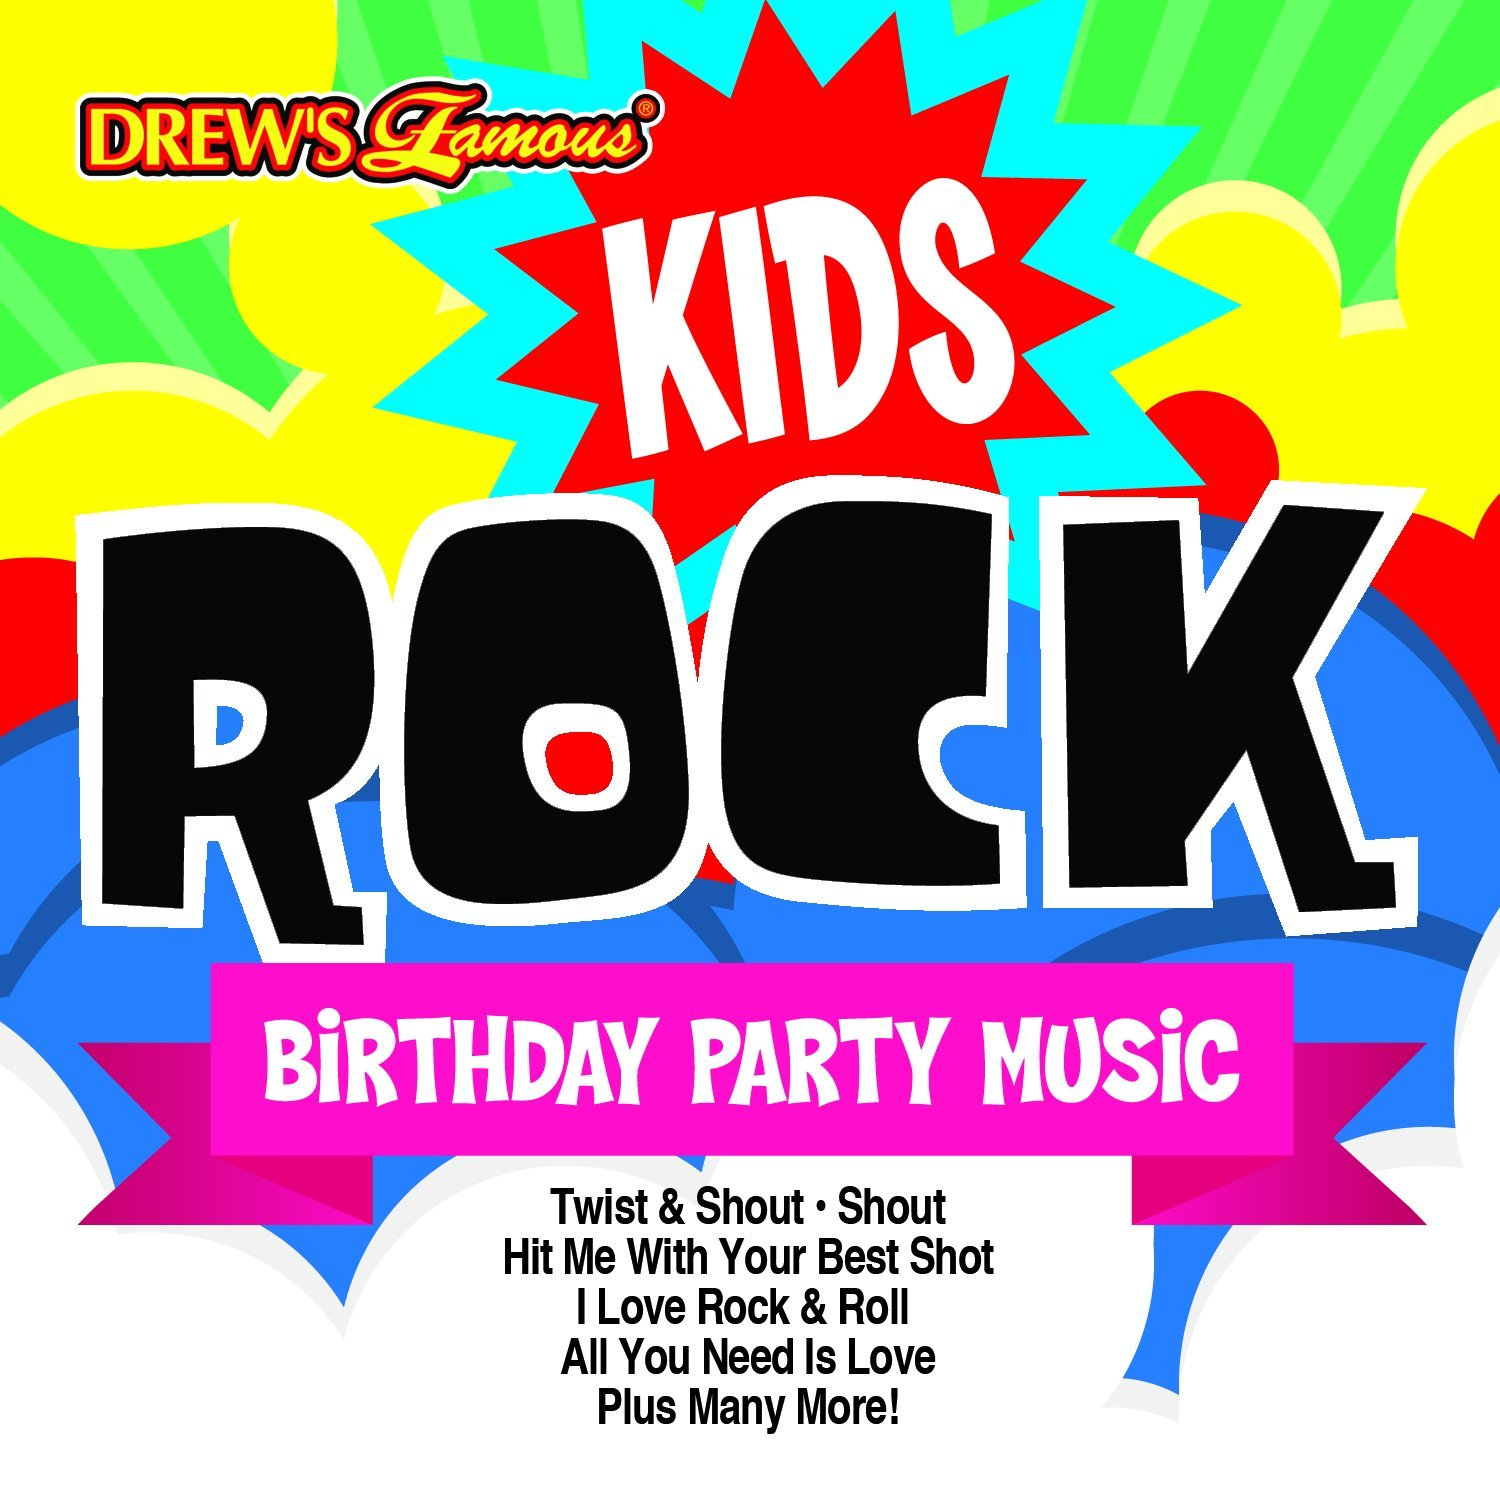 Drew's Famous Kids Rock Birthday Party Music